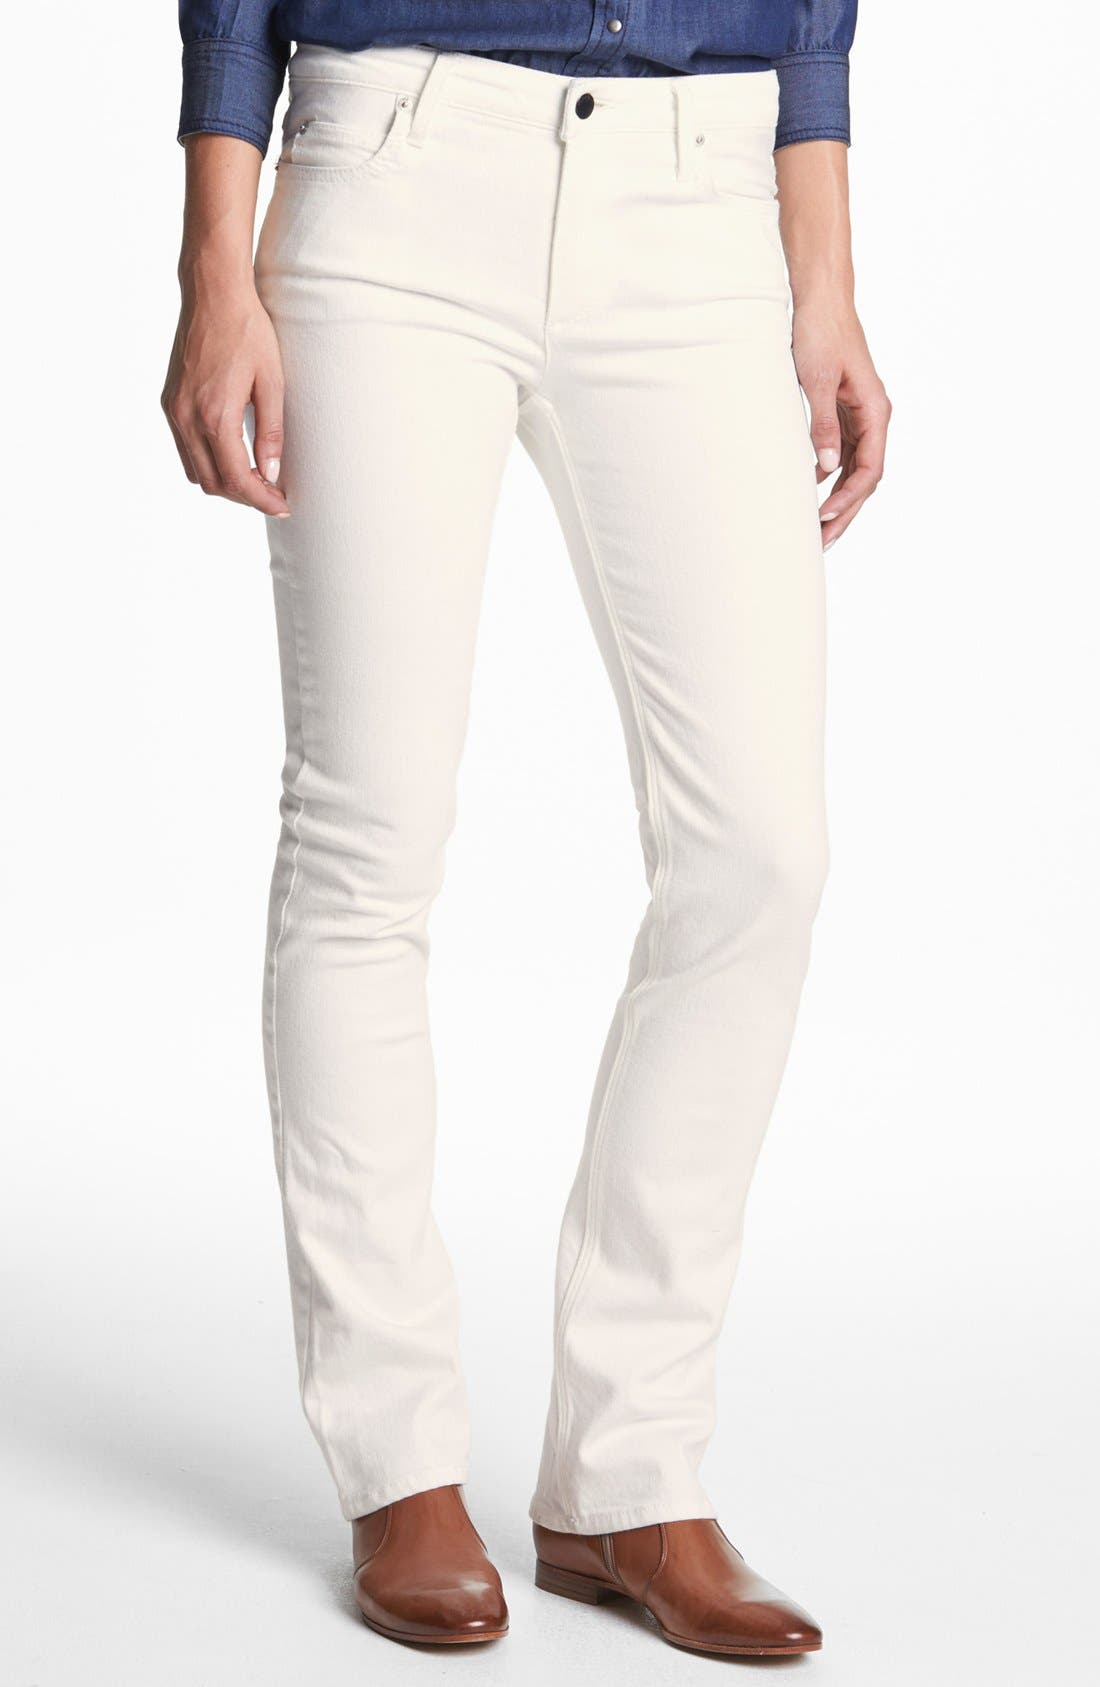 Alternate Image 1 Selected - Theory 'Crosby C.' Slim Leg Jeans